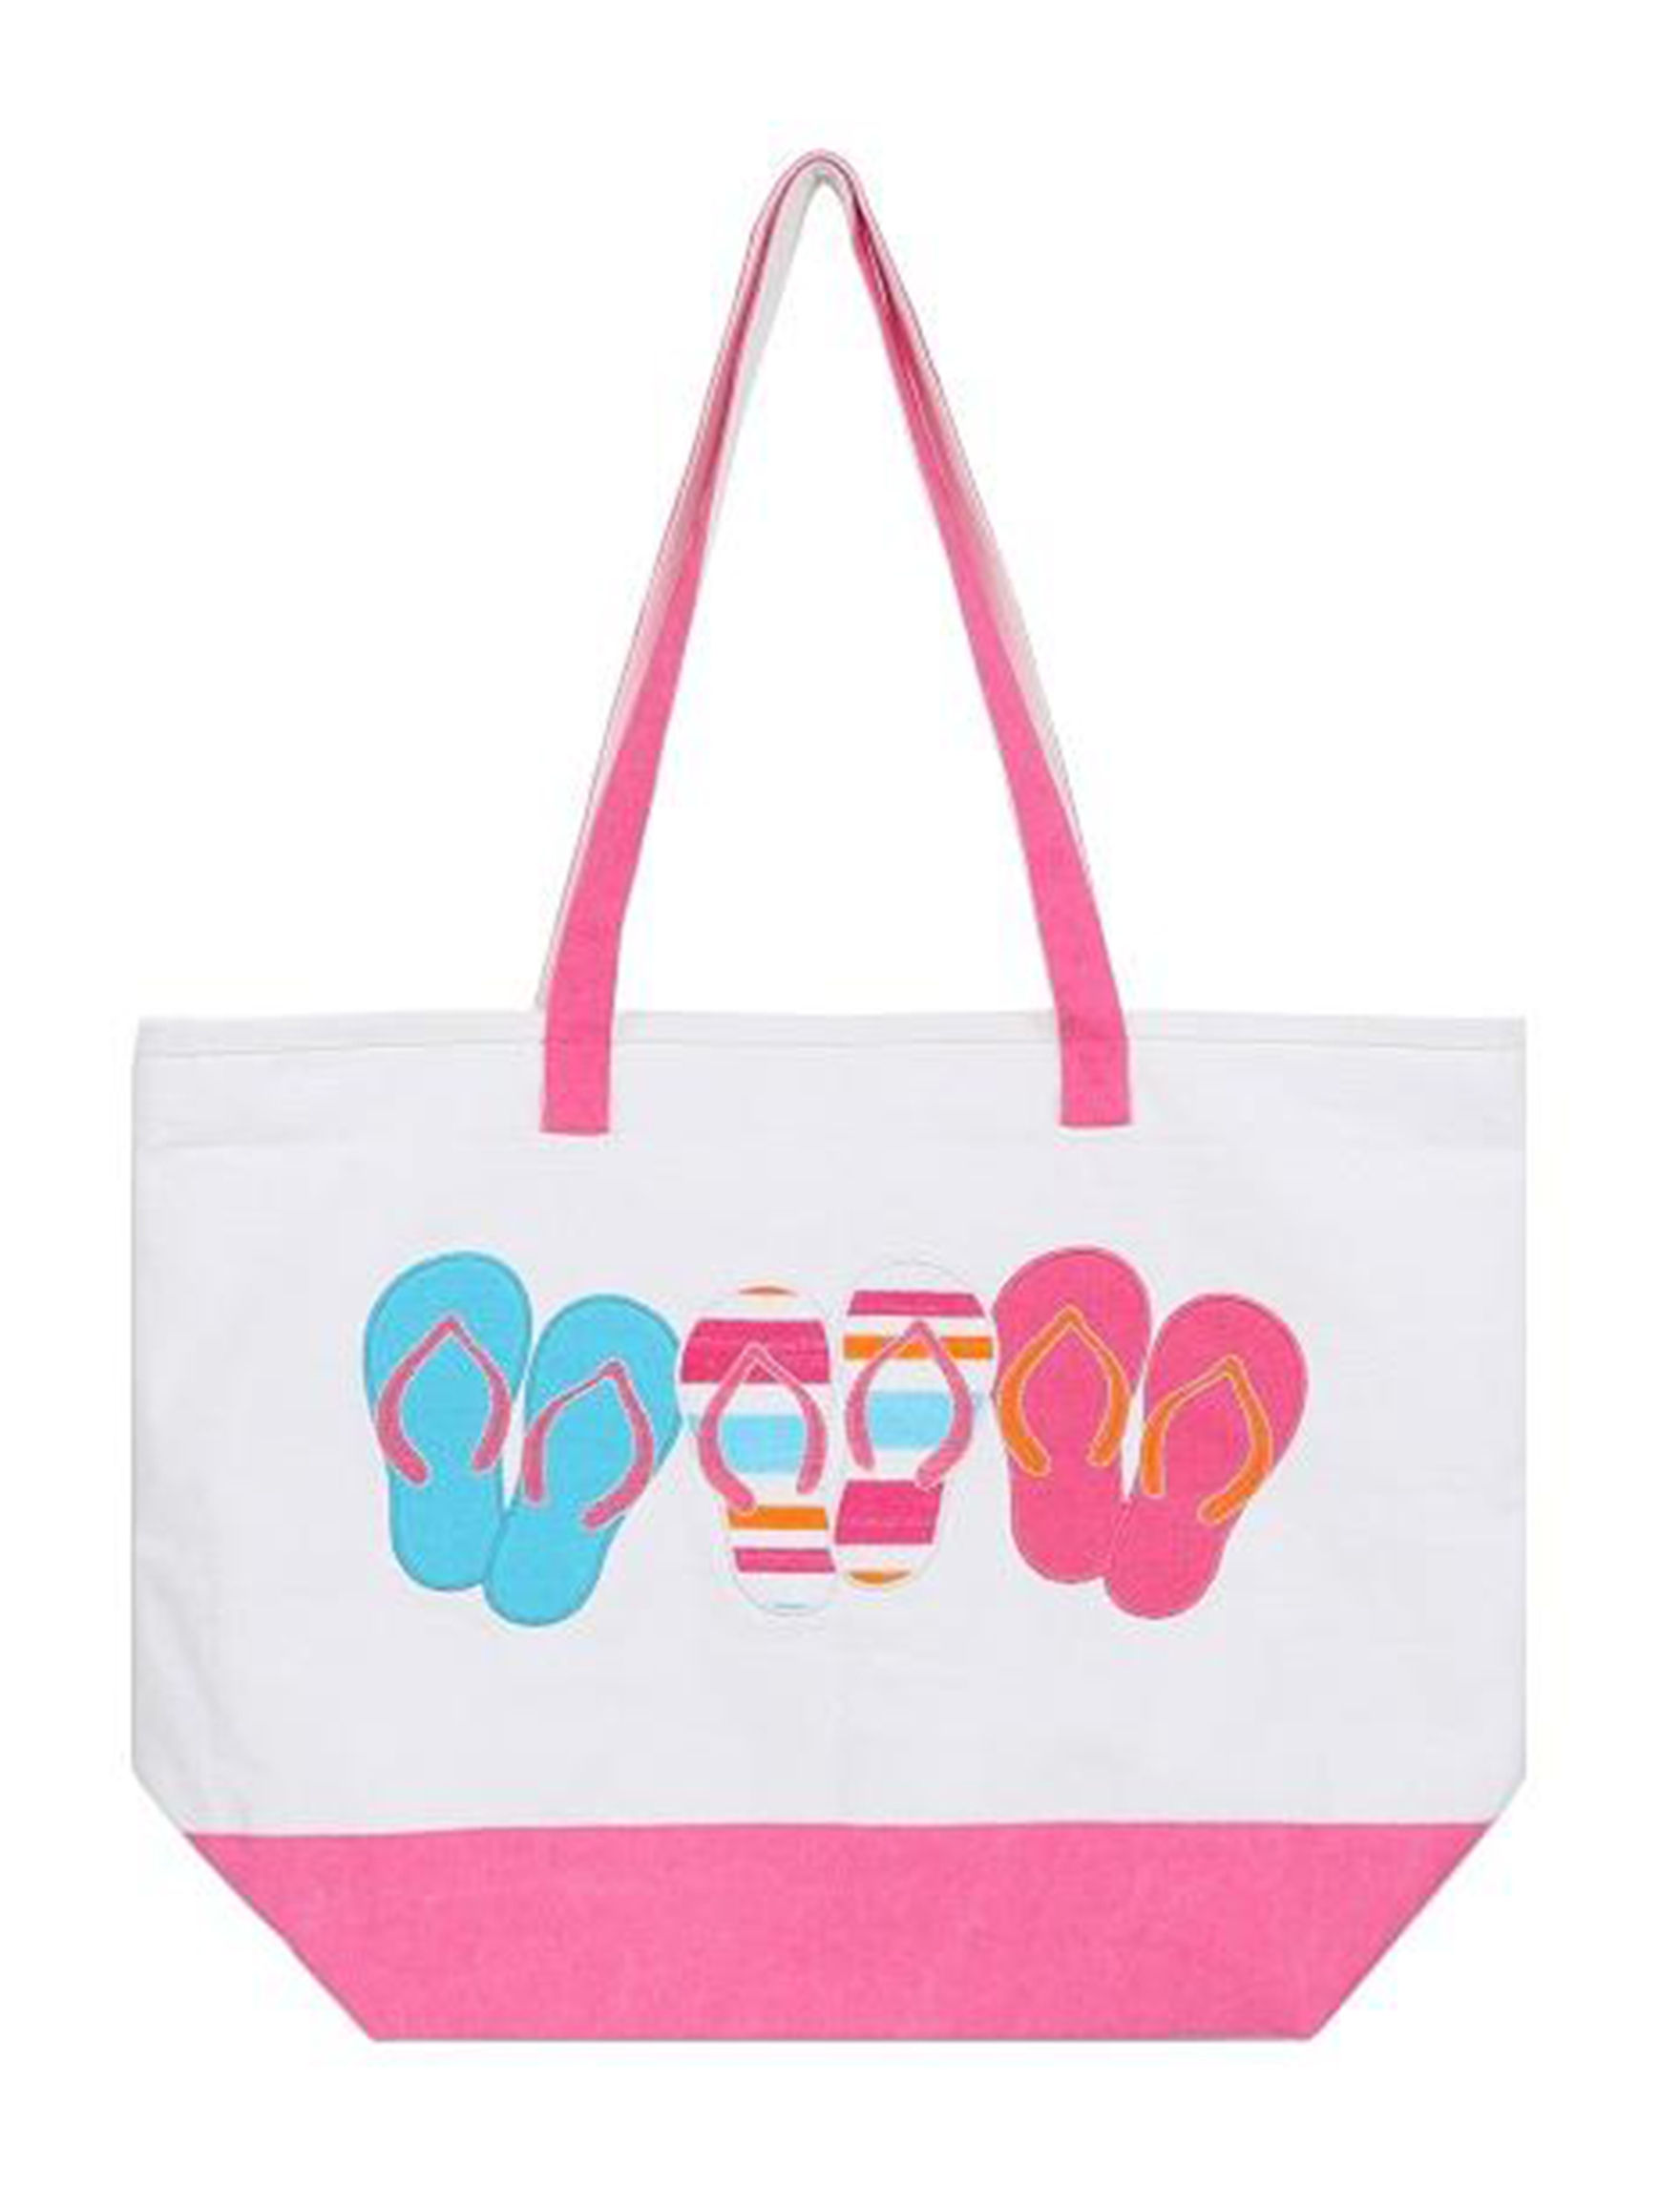 Dennis East White / Pink Travel Totes